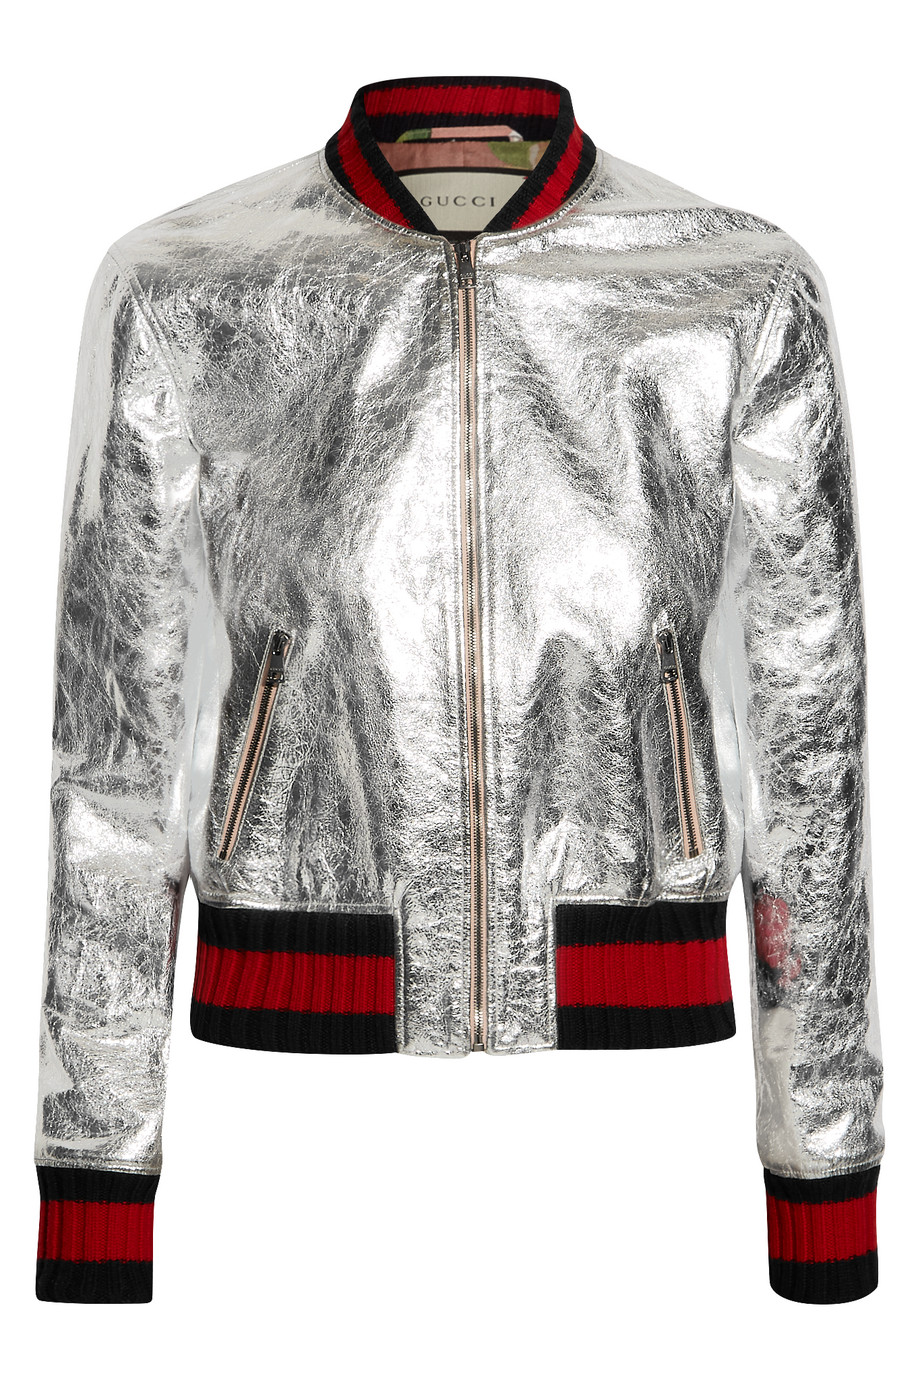 Gucci Metallic Leather Bomber Jacket, Silver, Women's, Size: 38